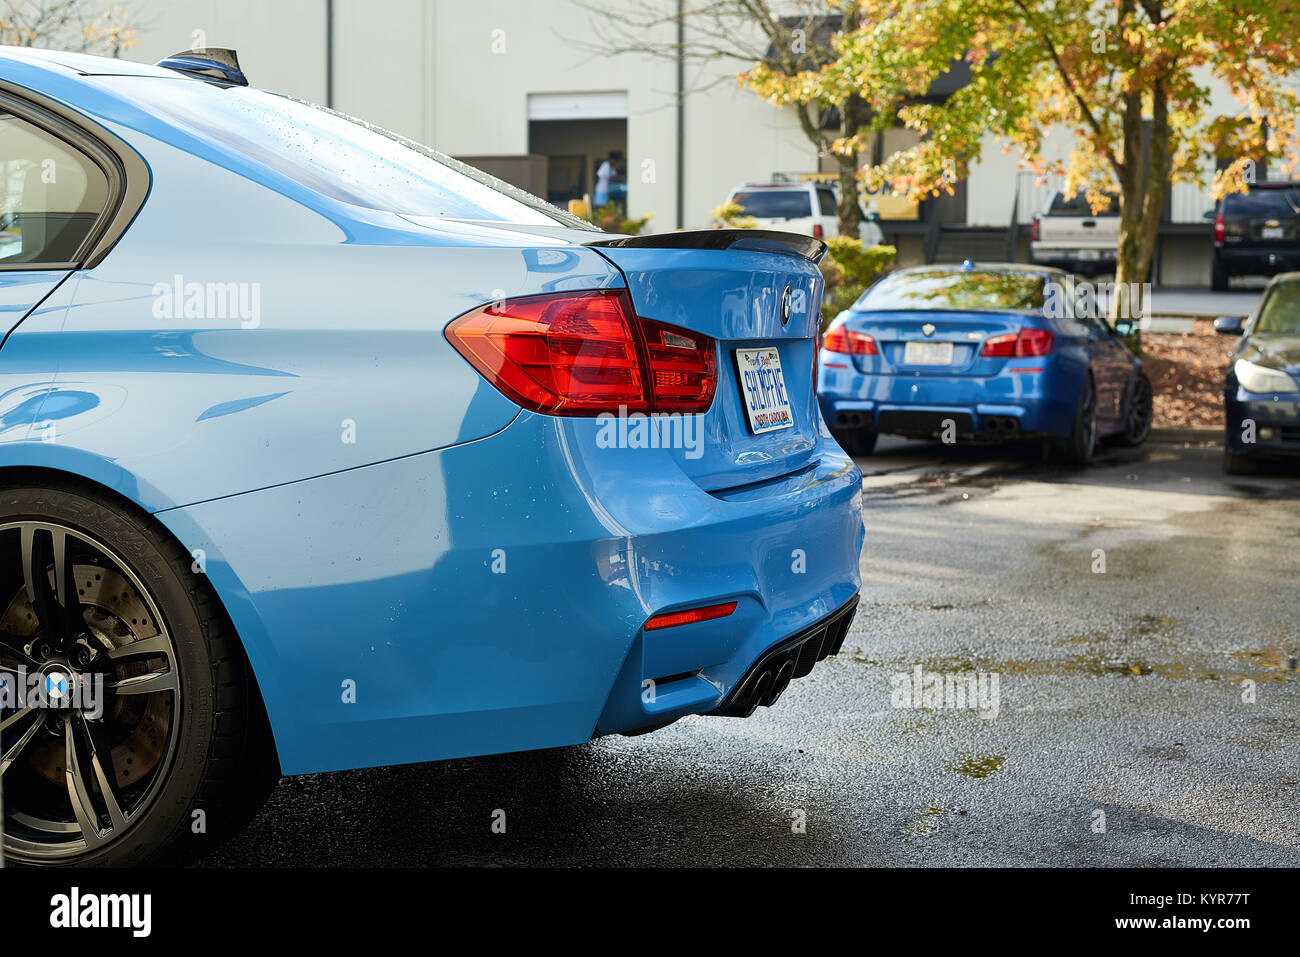 Bmw M3 Car Immagini & Bmw M3 Car Fotos Stock Alamy